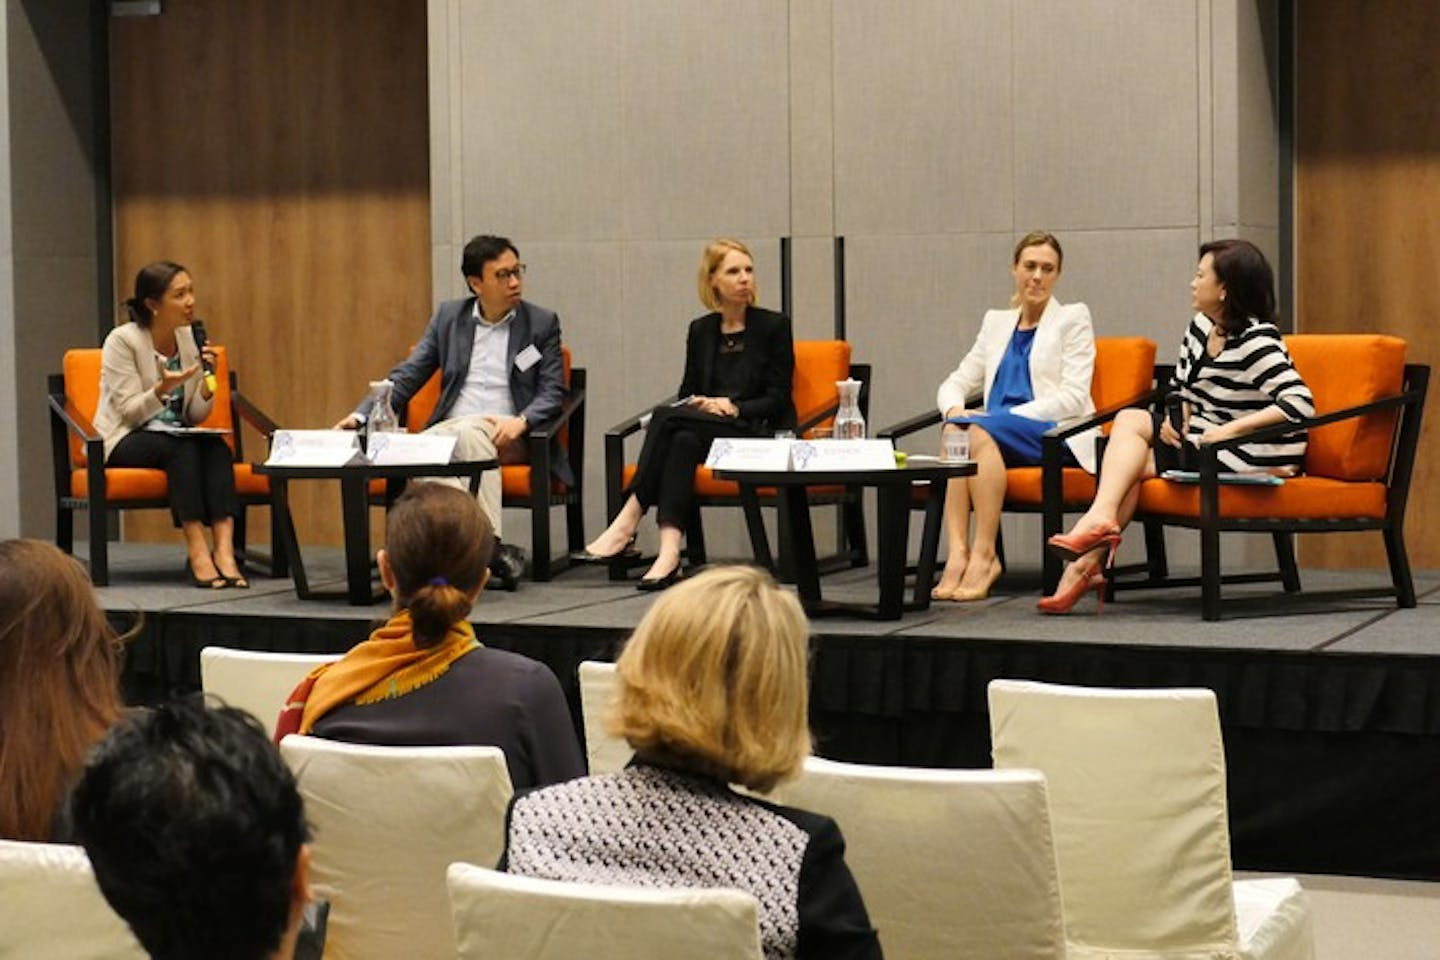 Panel discussion on SDGs